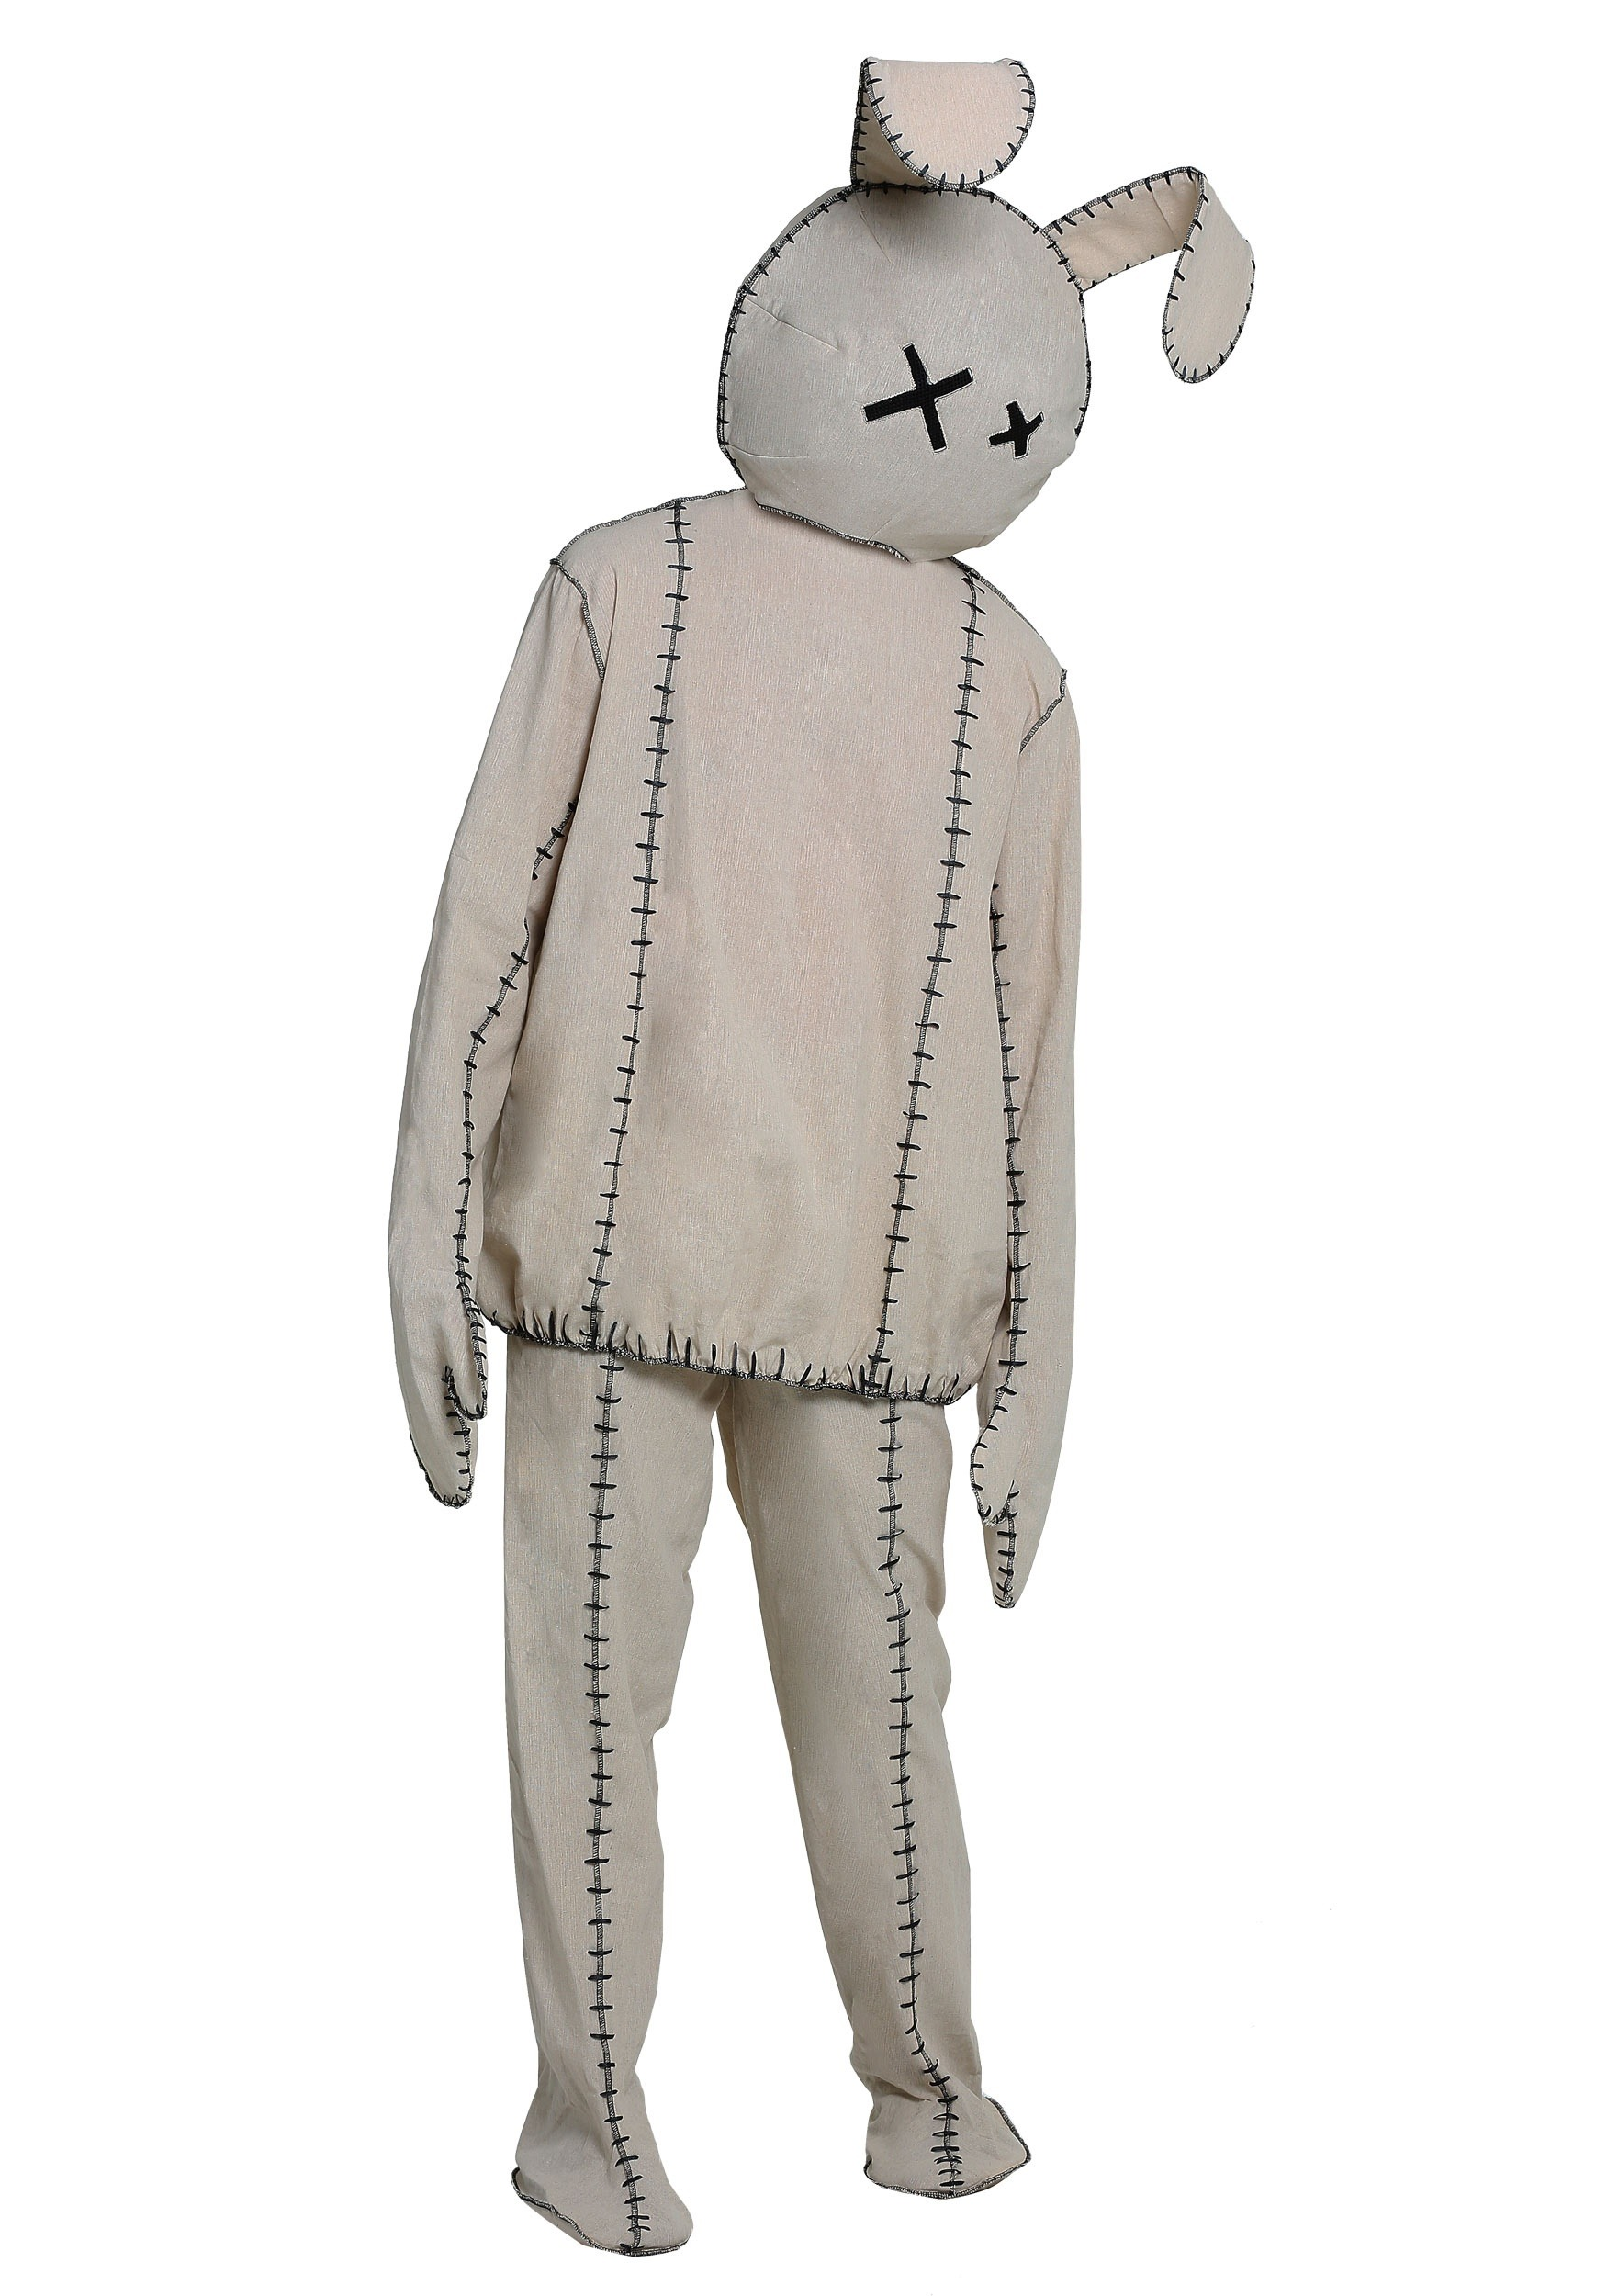 Lifeless Bunny Costume for Adults